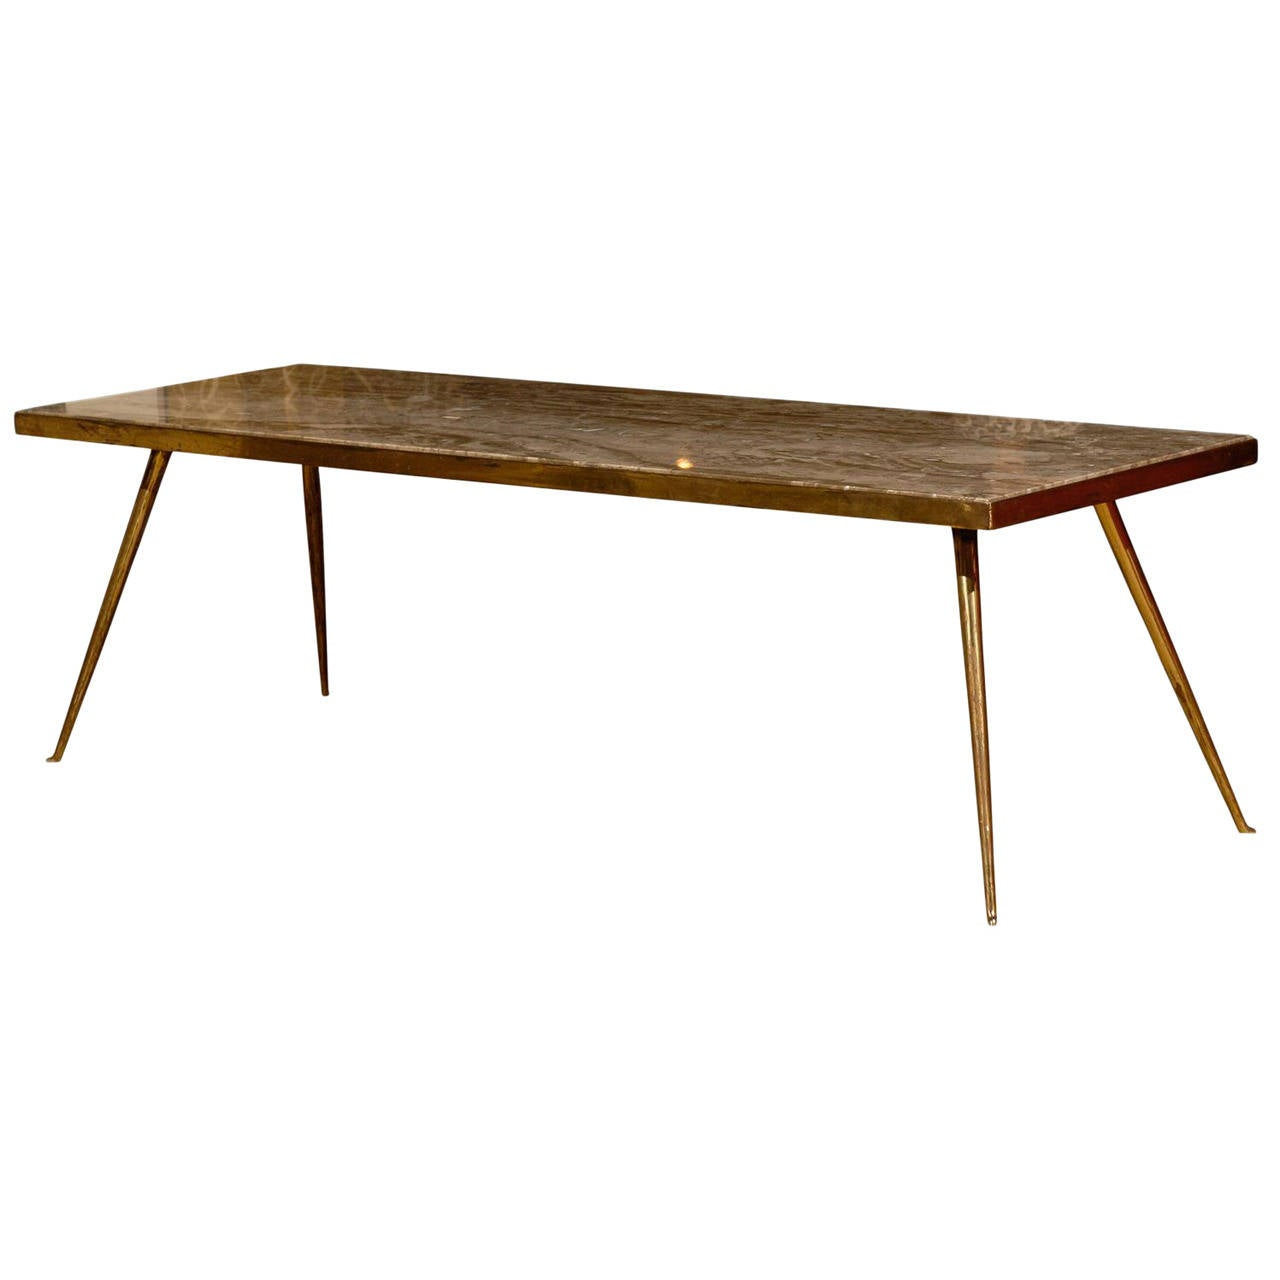 Mid century modern coffee table at 1stdibs - Modern table ...